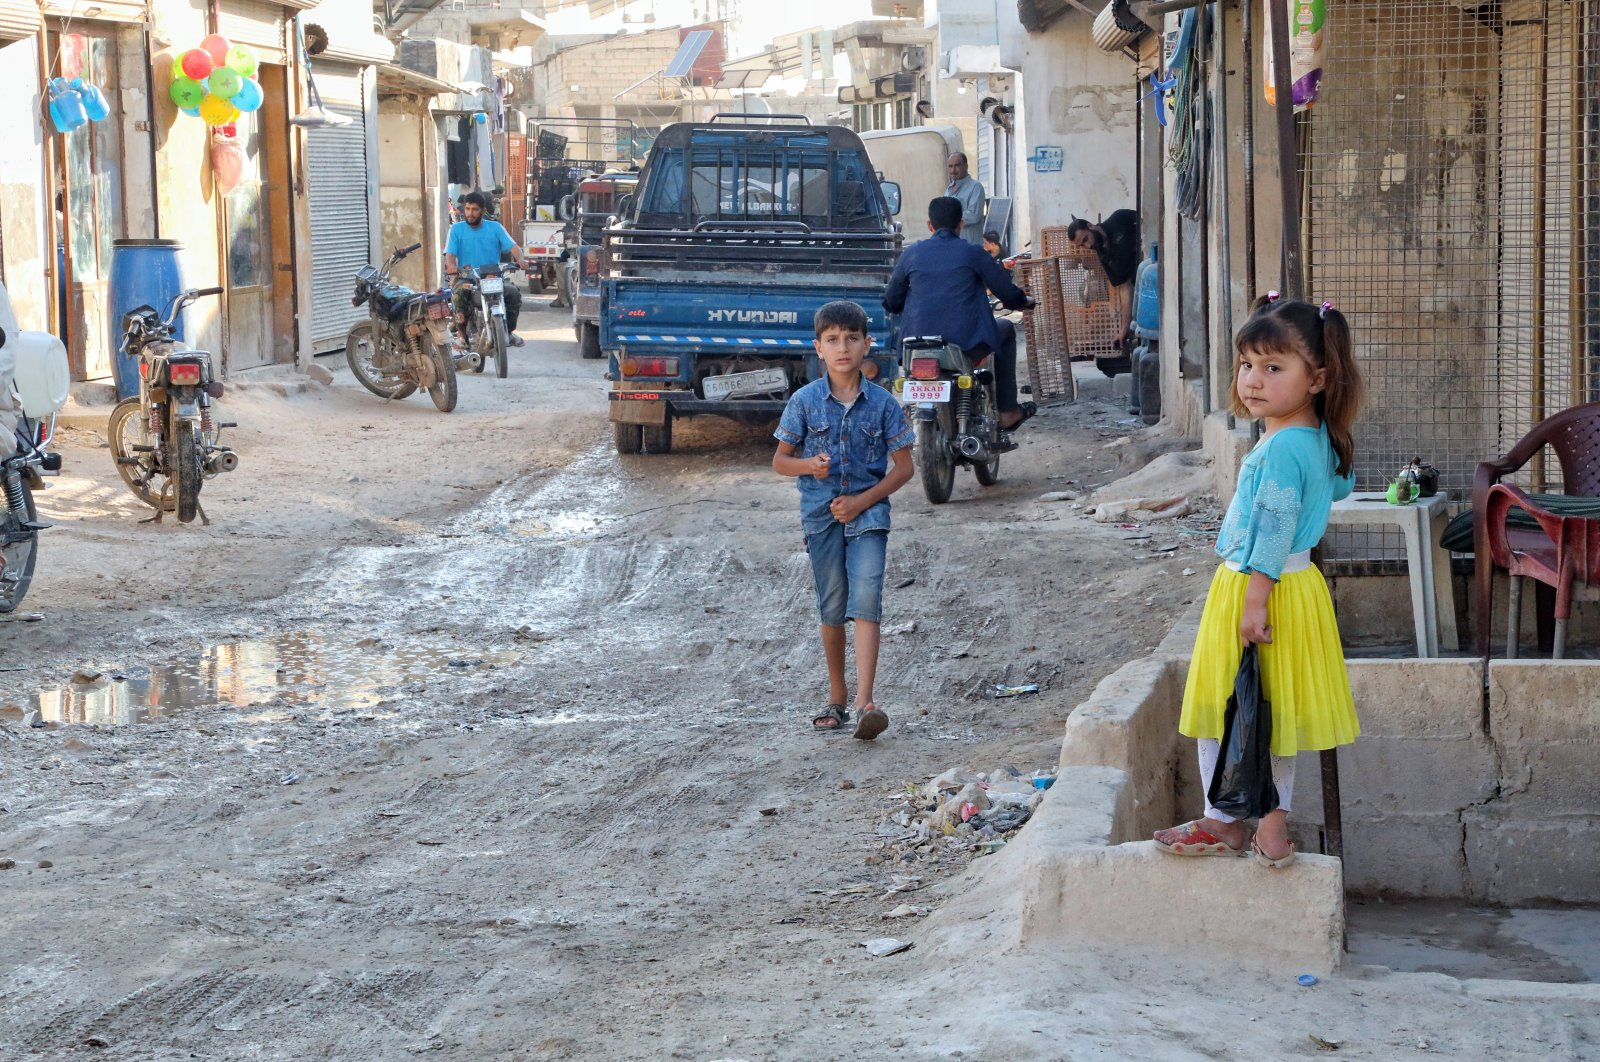 Daily life of displaced Syrians in Karama camps in the northern countryside of Idlib governorate on the Syrian-Turkish border on May 30, 2021. (Photo by Getty Images)